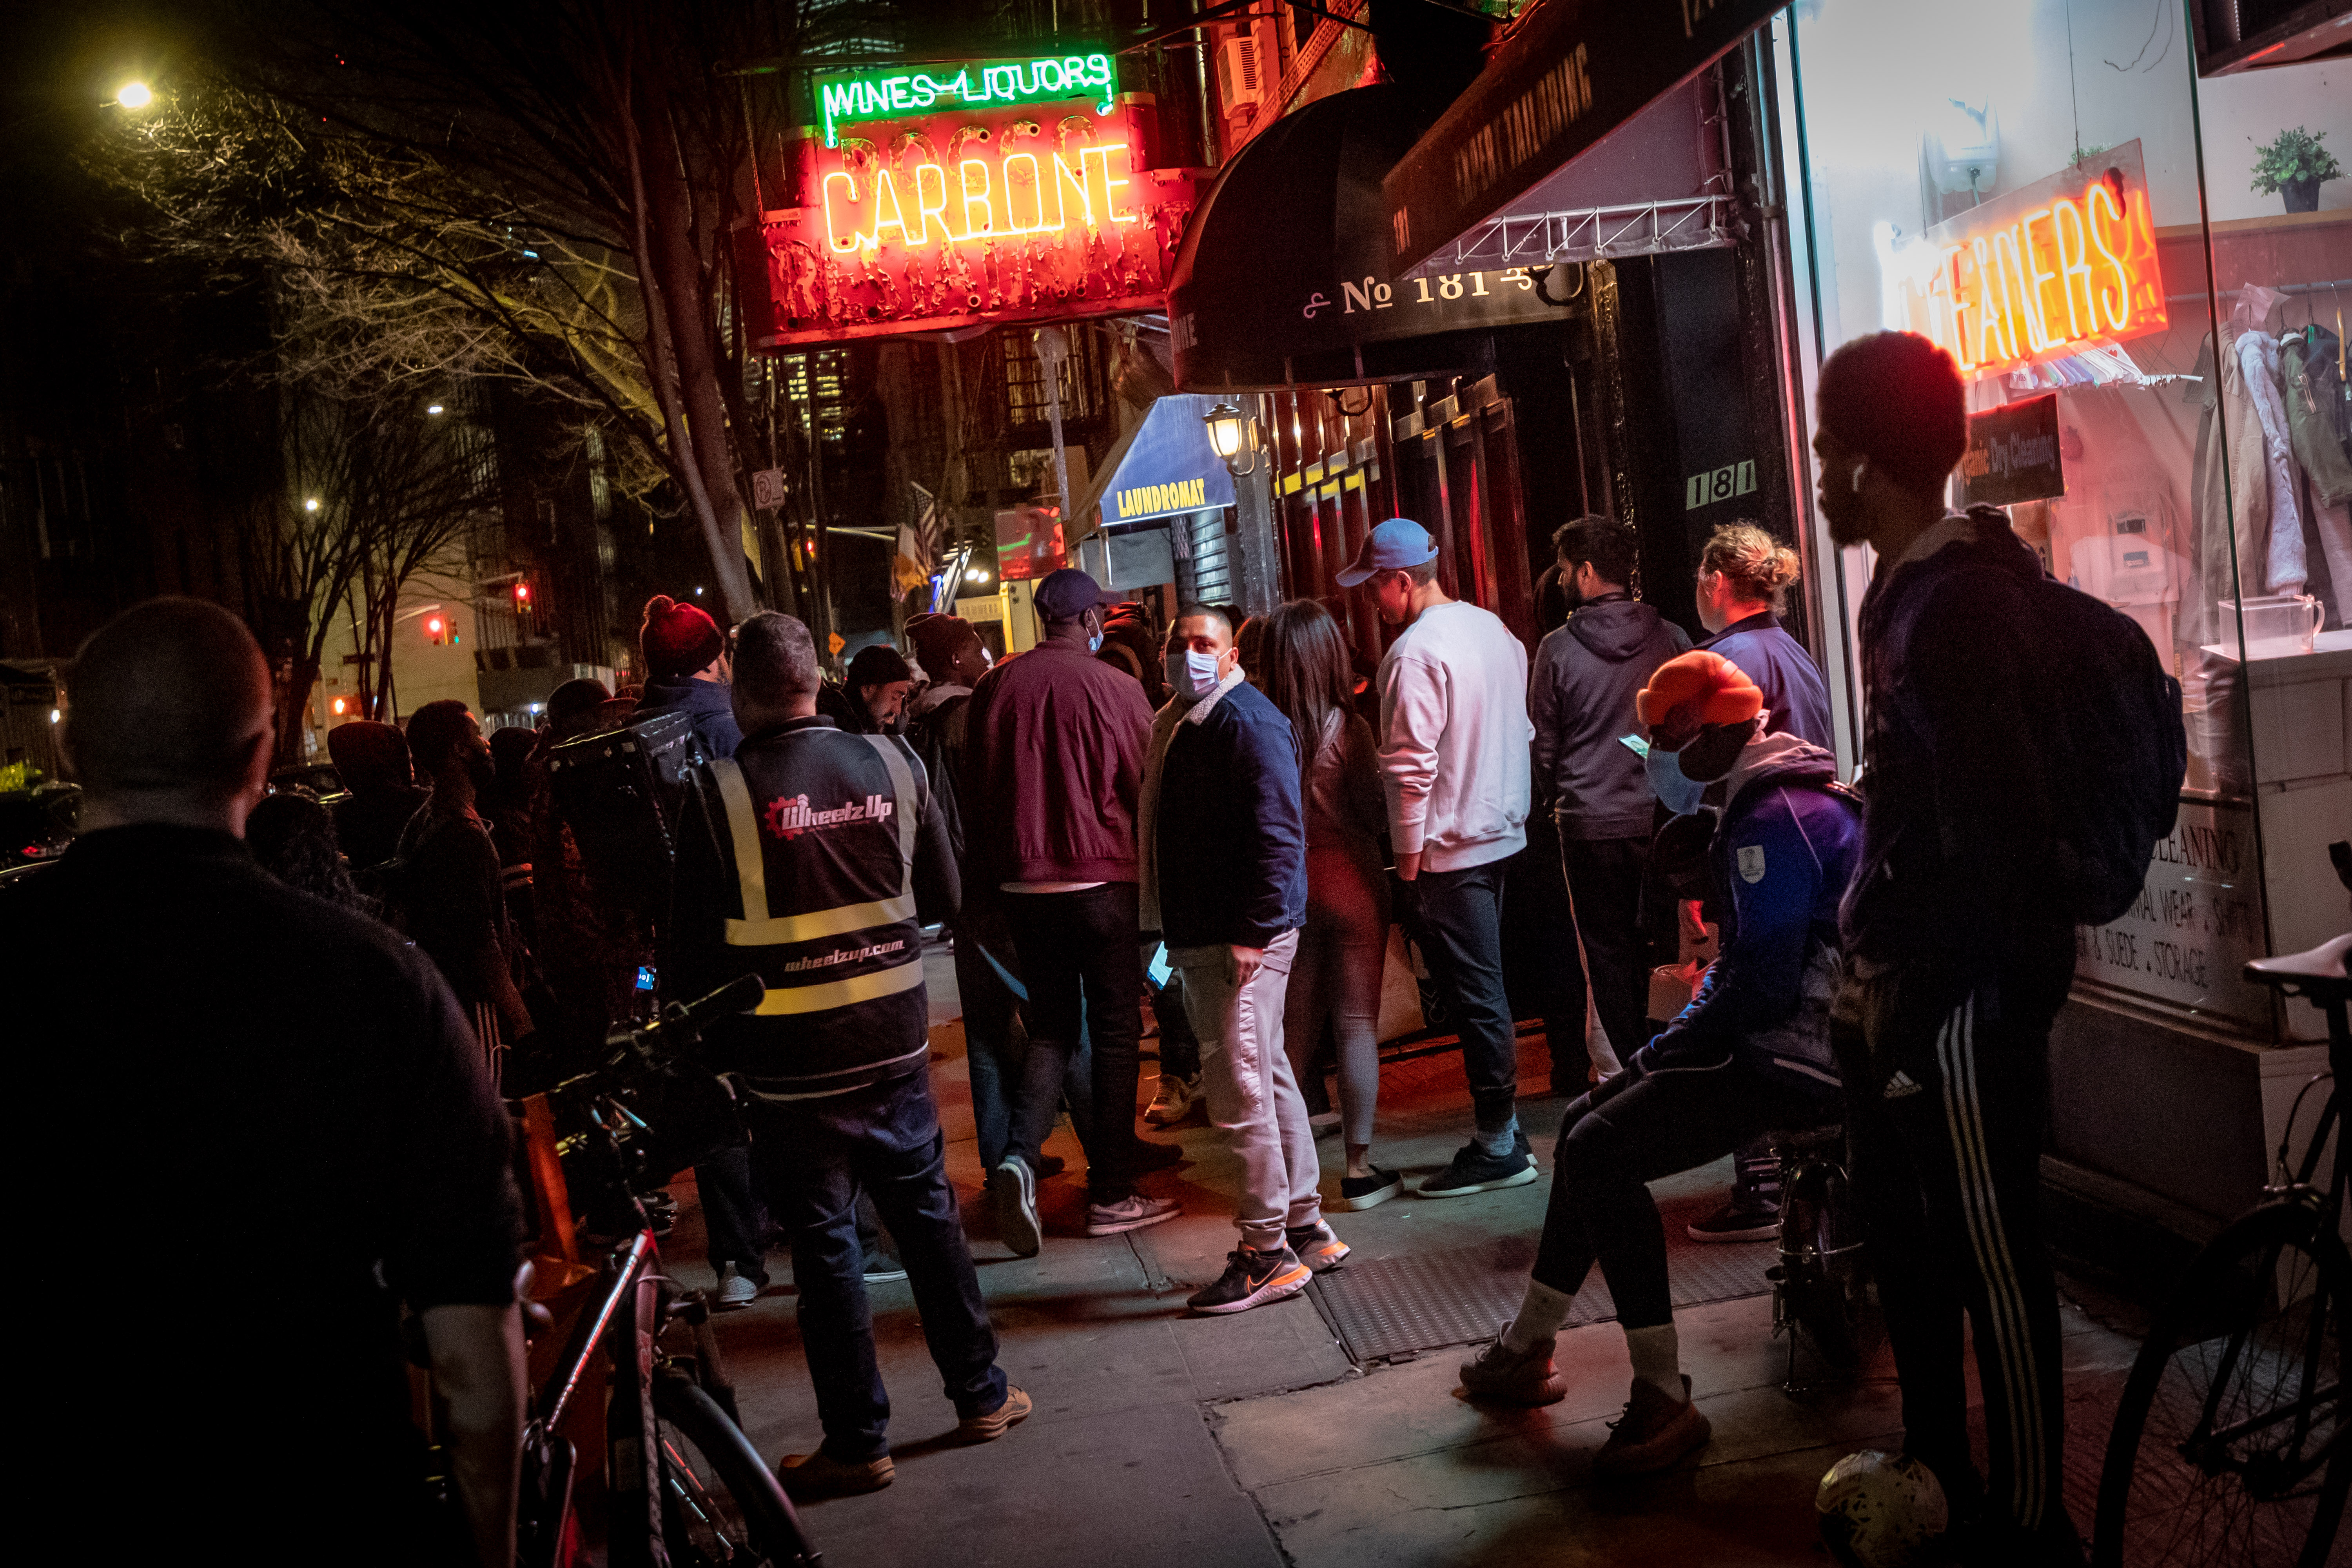 Large crowds of customers and deliverymen mob the outside of Carbone